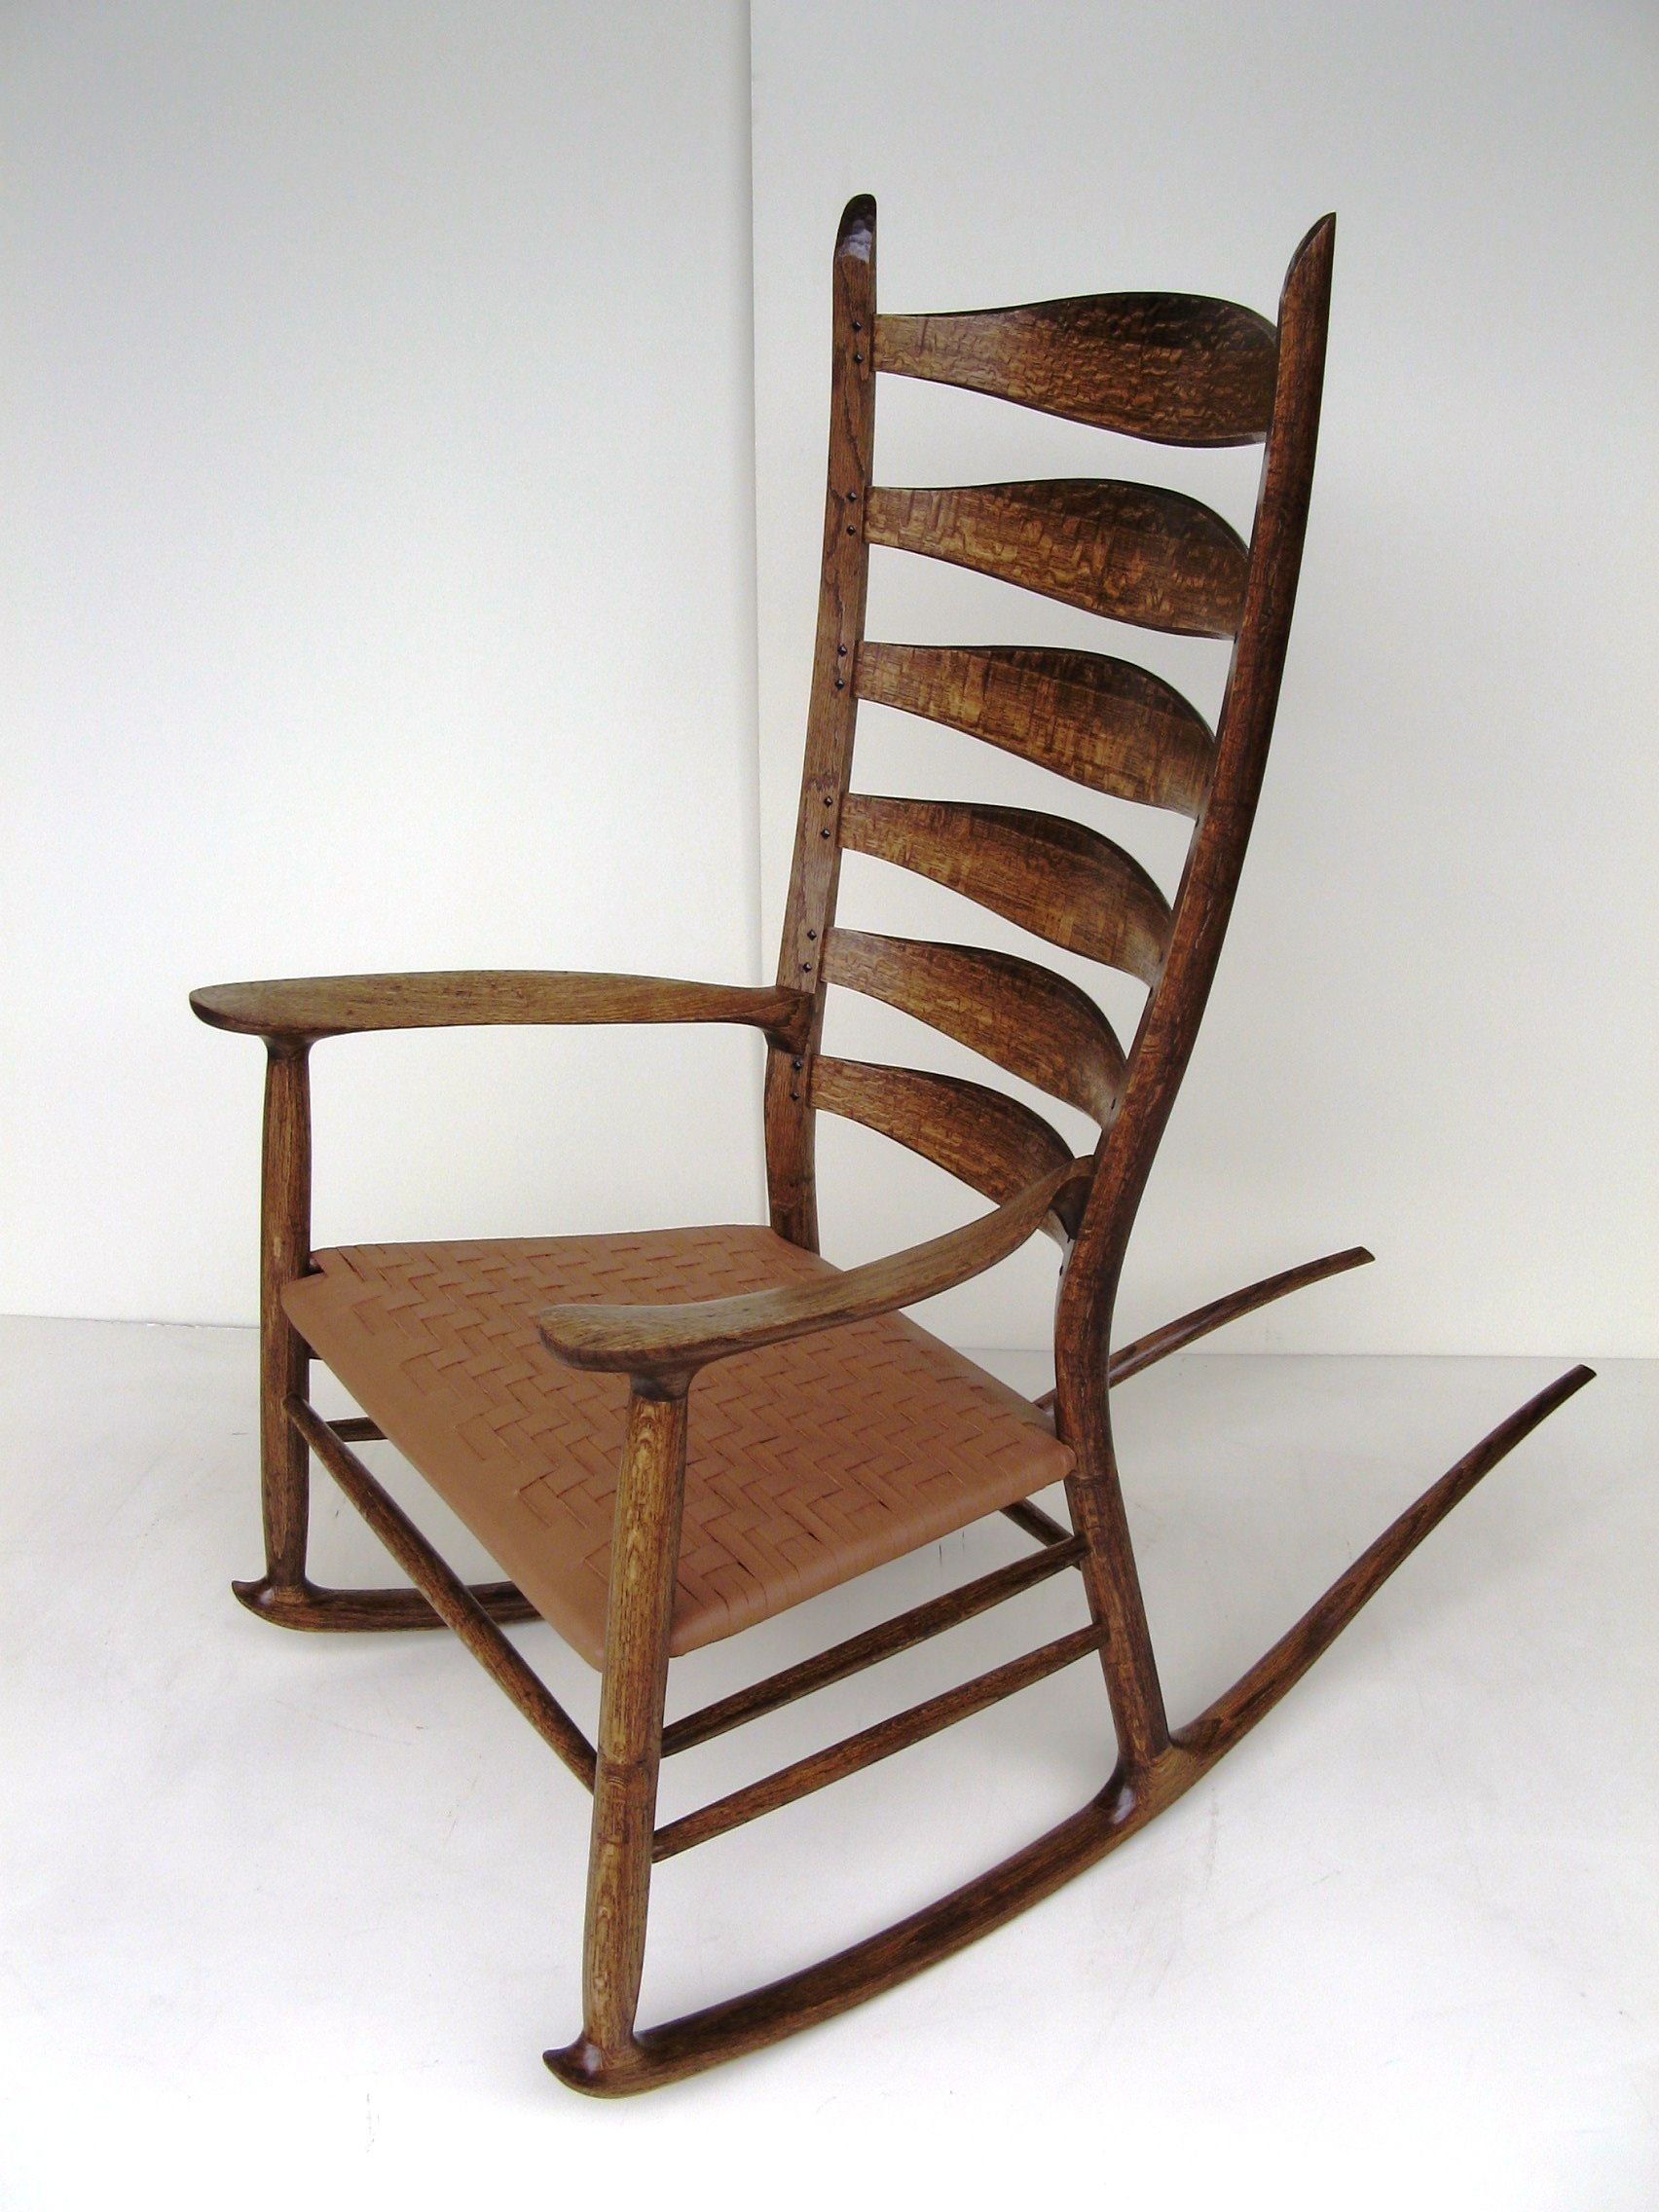 Chair Anatomy Design And Construction By James Orrom Https Www Amazon Com Dp 0500021759 Ref Cm Sw R Pi Dp U X Unique Chairs Design Chair Design Unique Chair